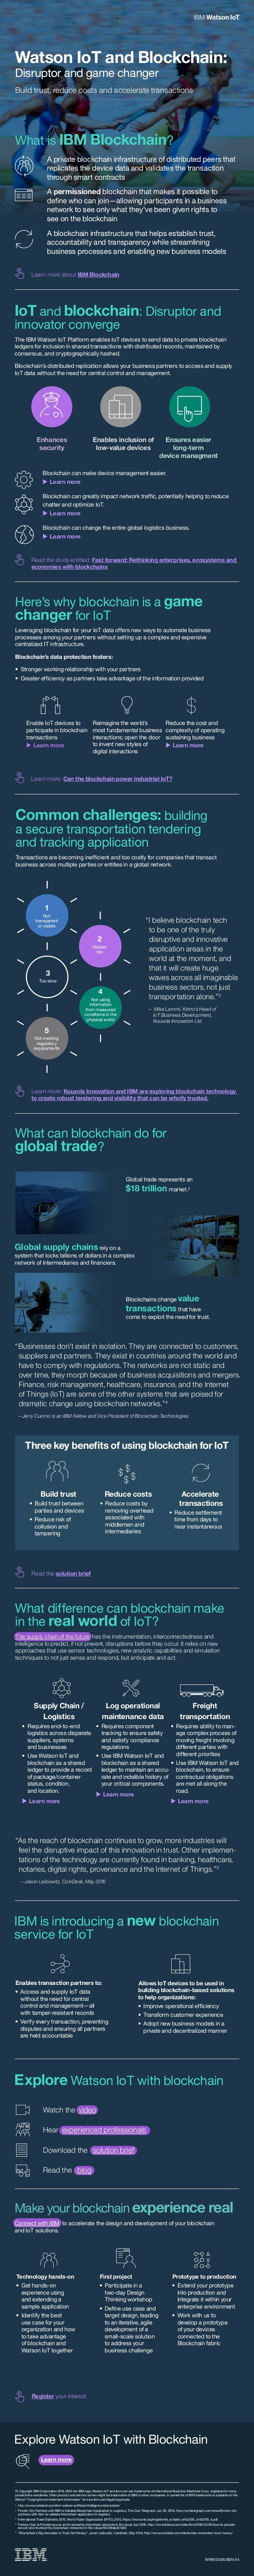 Watson IoT & Blockchain - disruptor and game changer [Infographic] - IBM